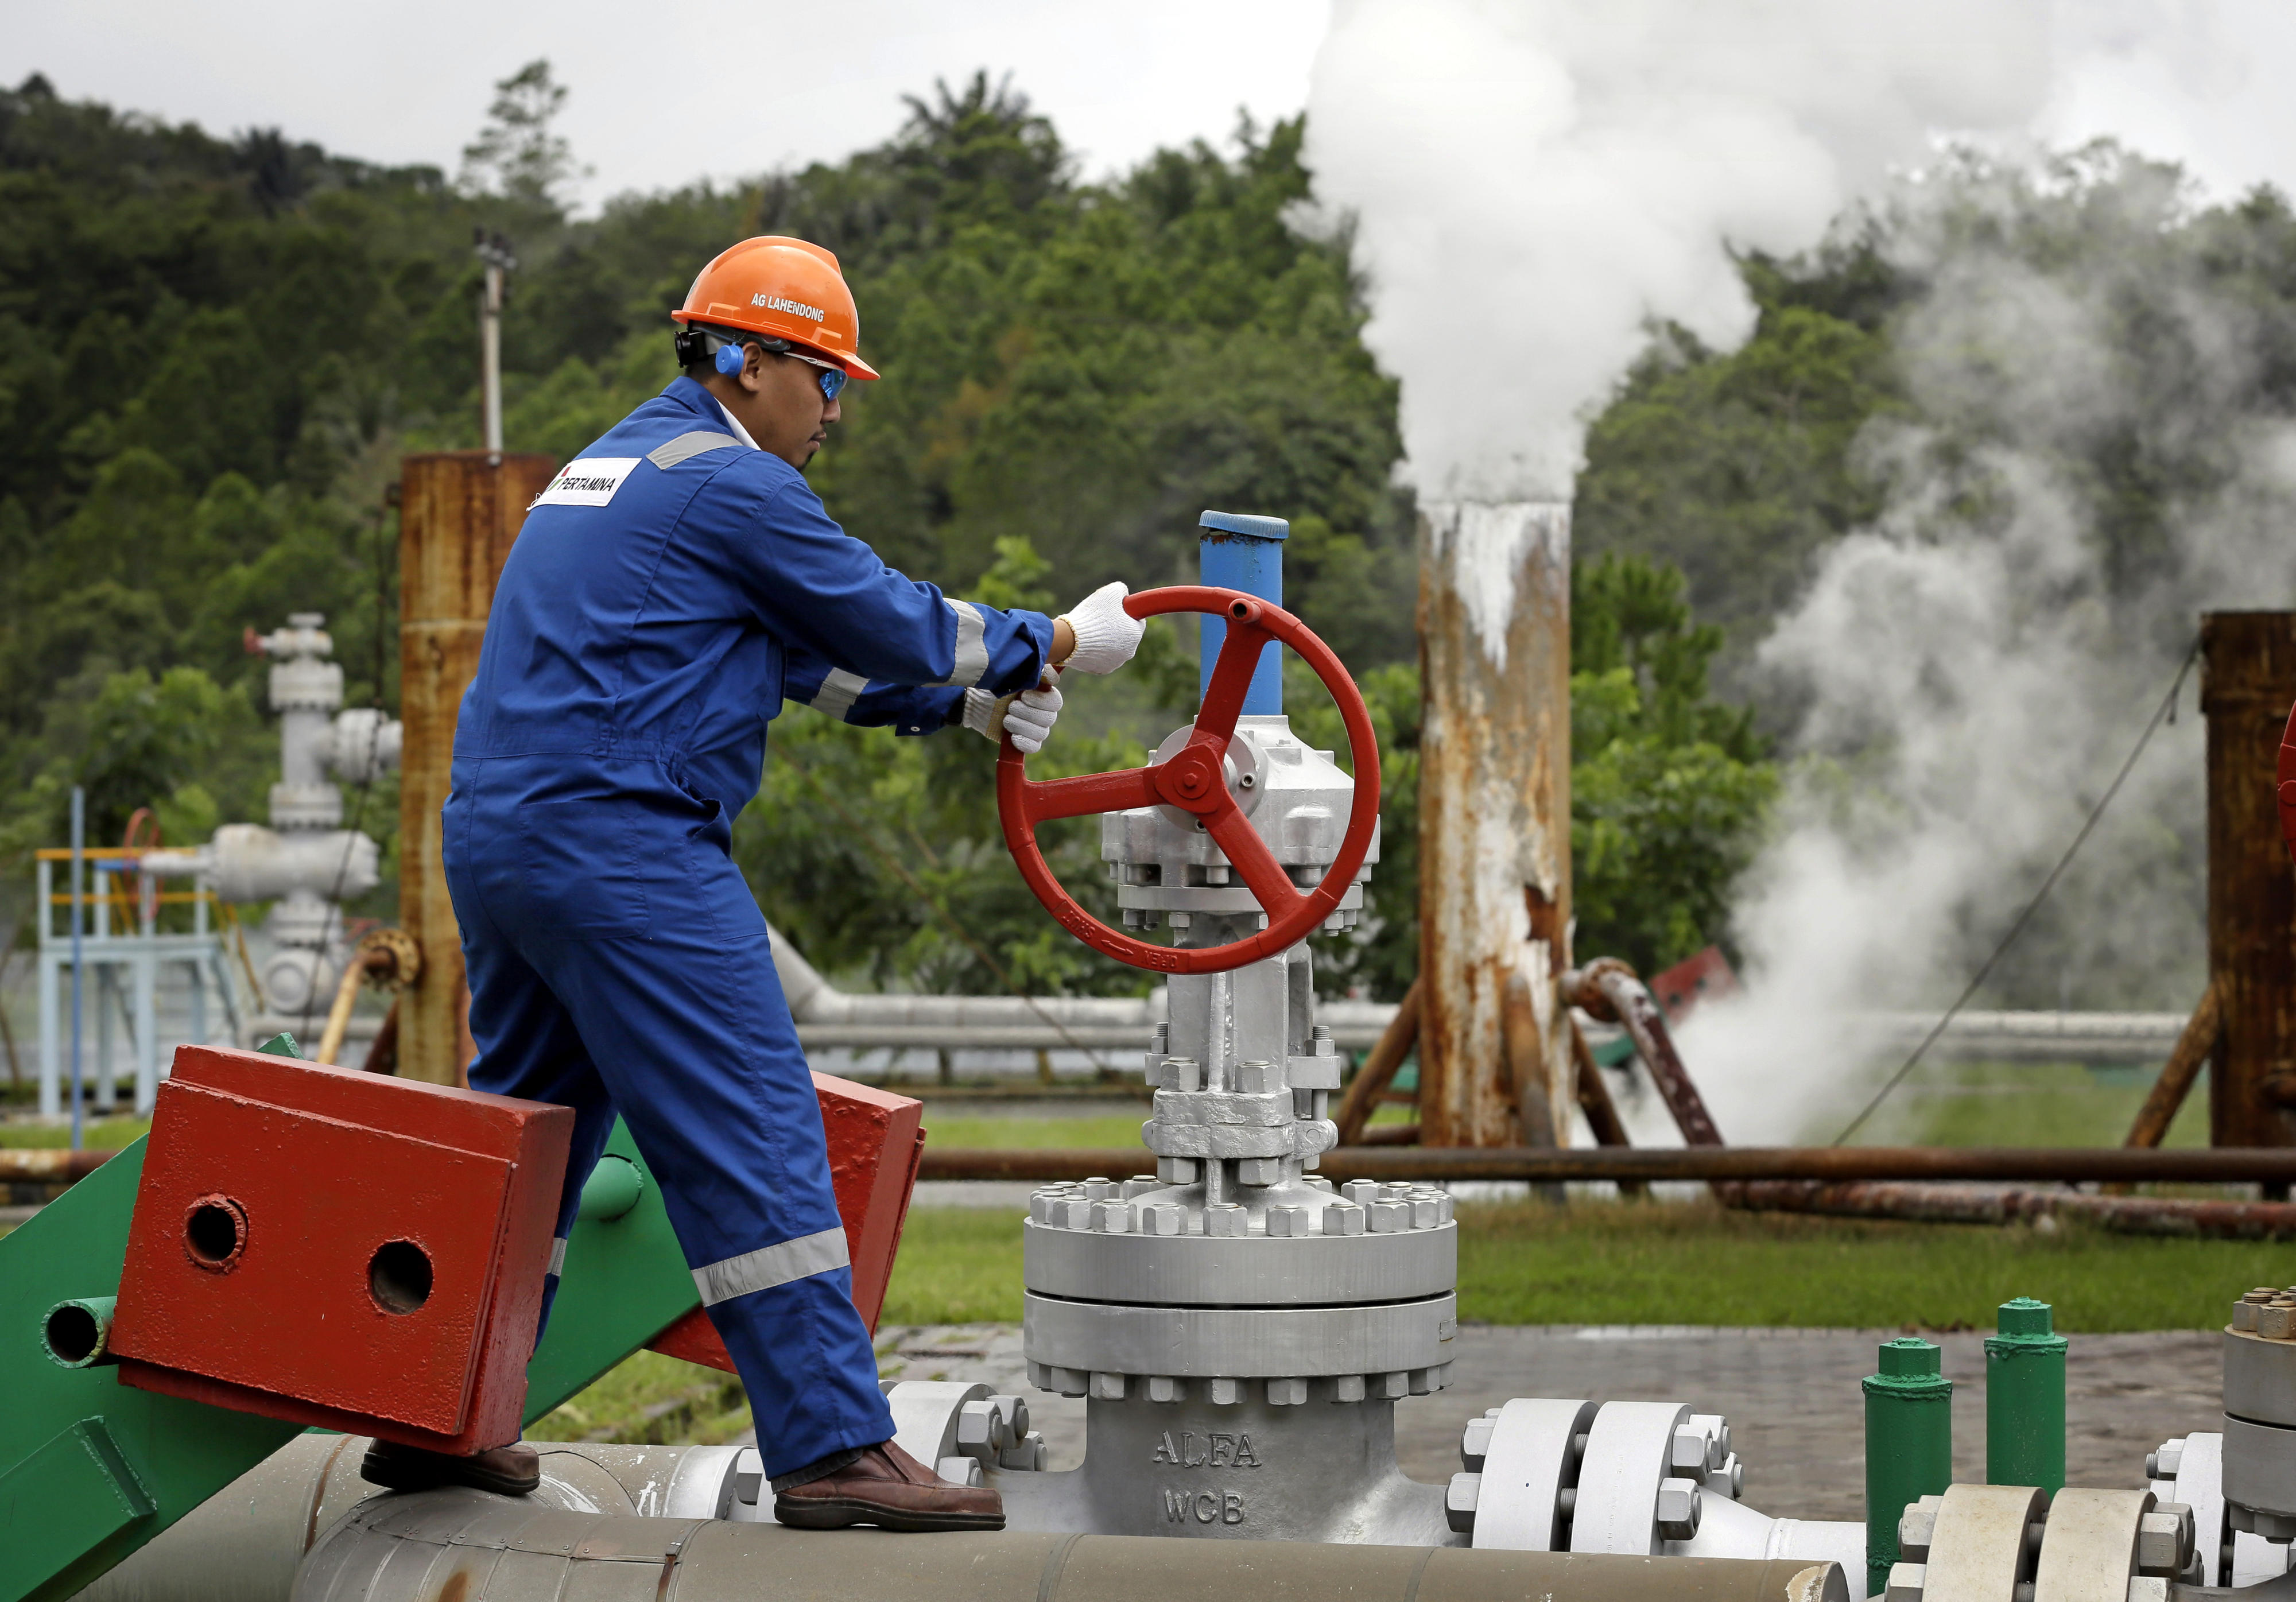 A worker at the Lahendong geothermal site on Sulawesi Island, Indonesia. The hot steam produced here is fed to a nearby power plant to generate electricity.